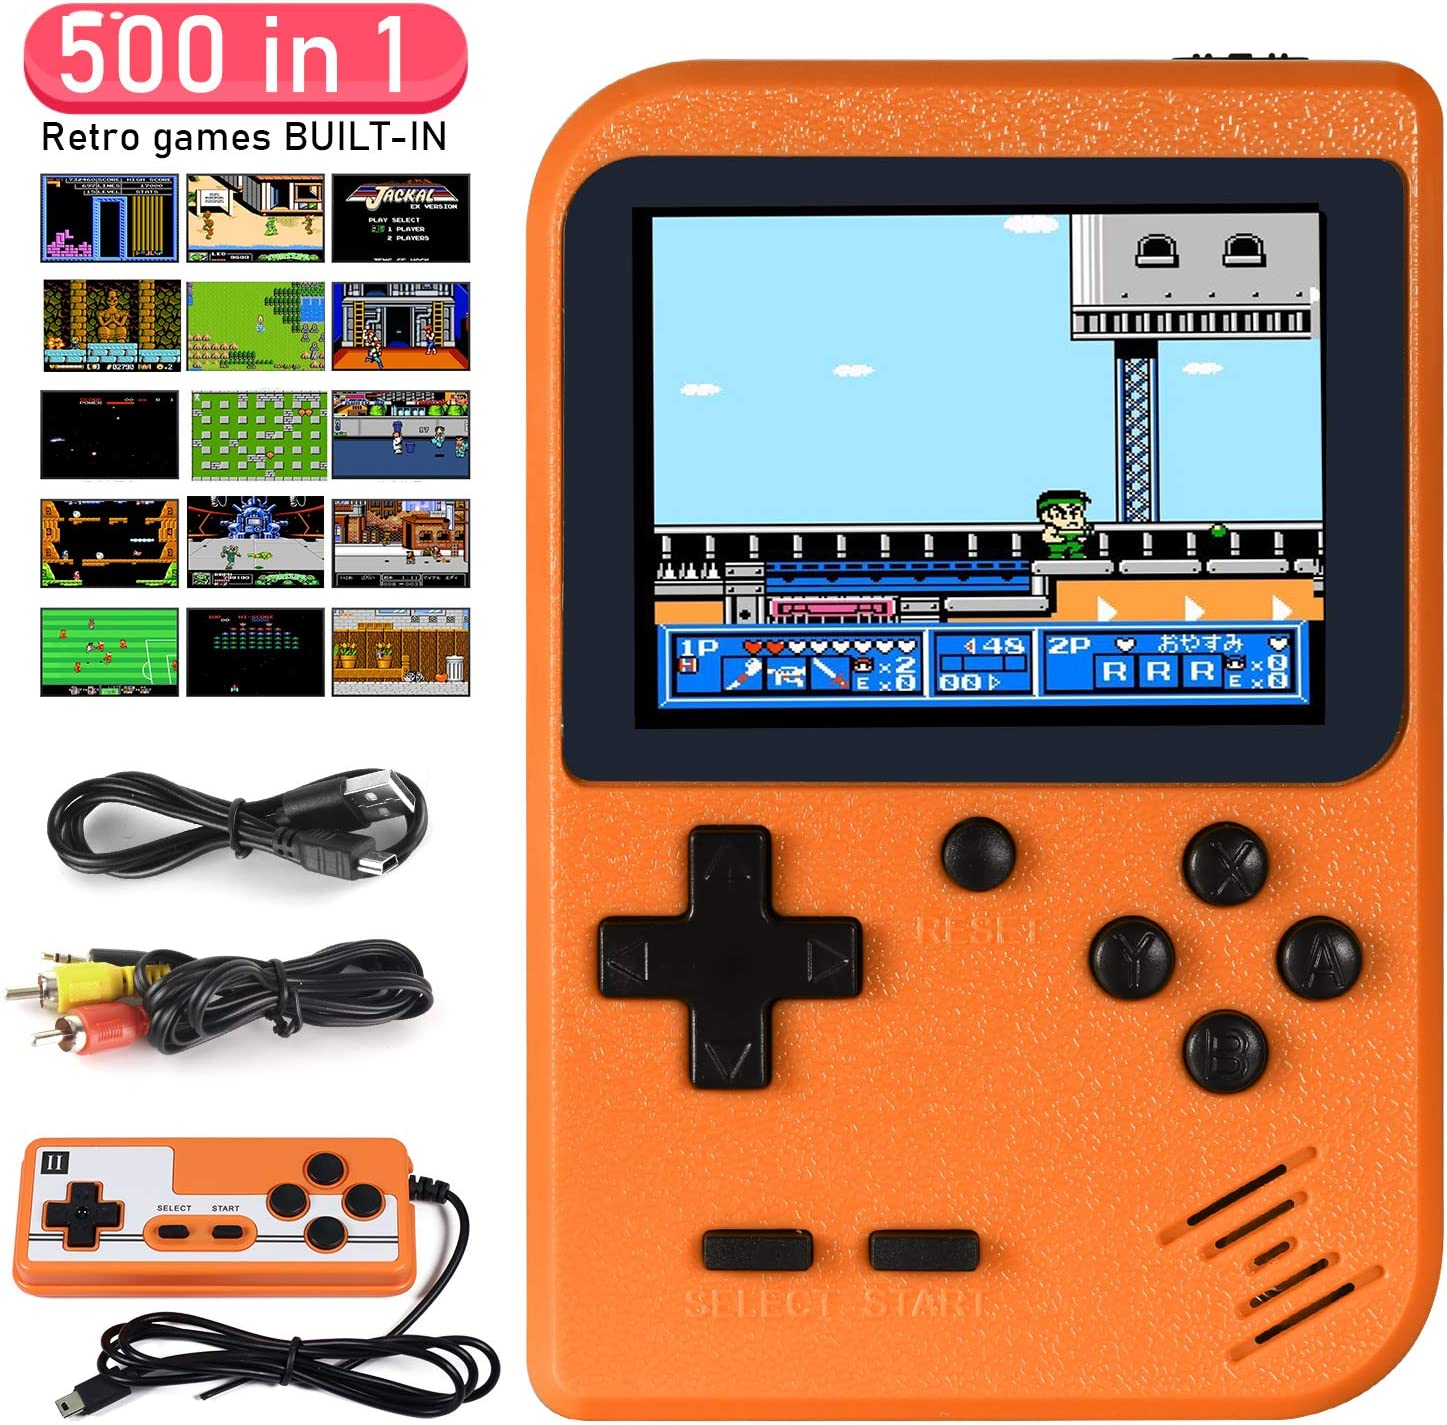 Imponigic Handheld Game Console Retro Mini Game Player with 500 Classical FC Games Double Players Mode Support Connect TV: Electronics